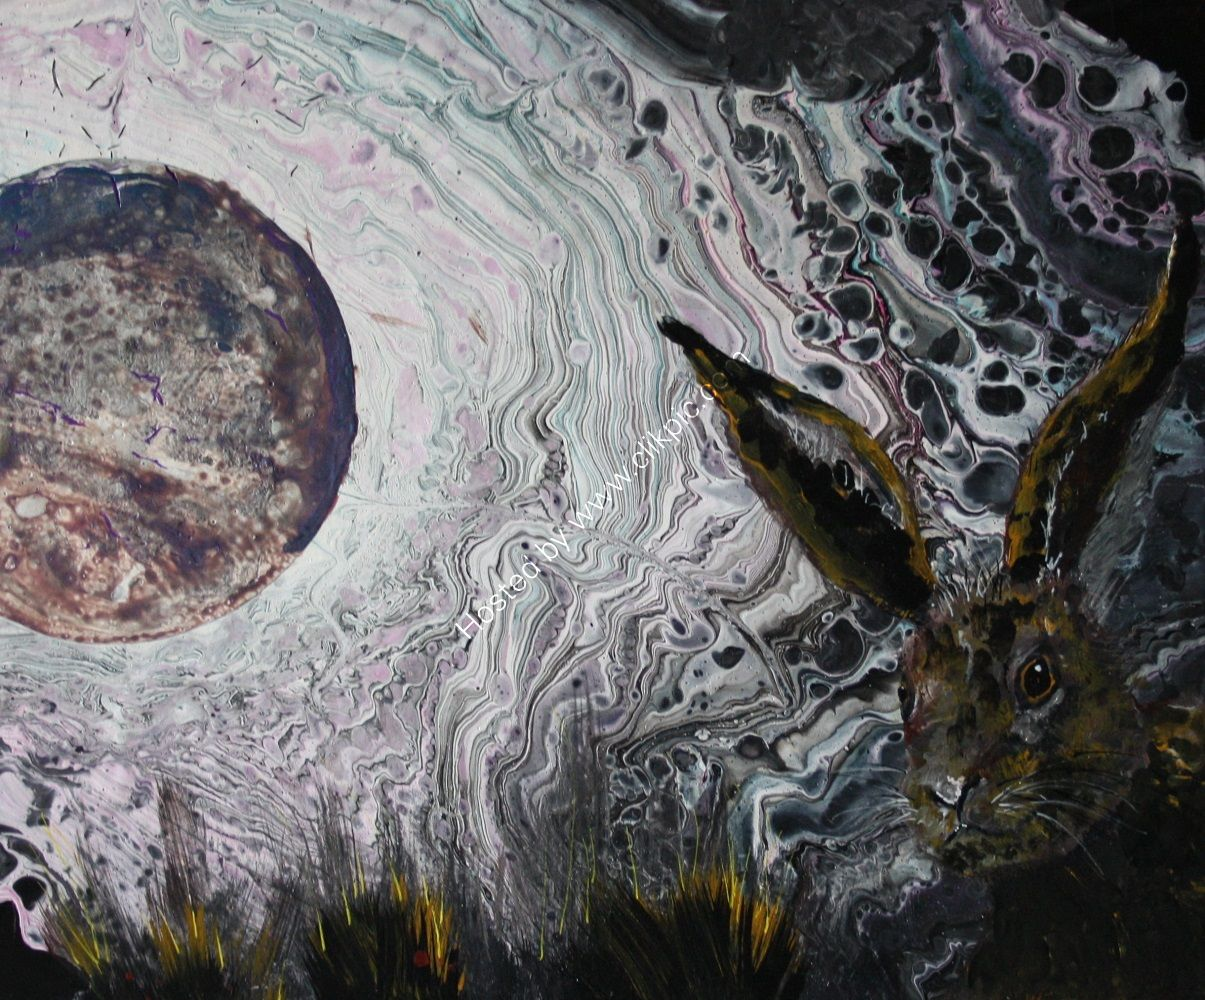 ACRYLIC POUR ON A 12X10 INCH BOX CANVAS, READY TO HANG. PAINTING OF A HARE.